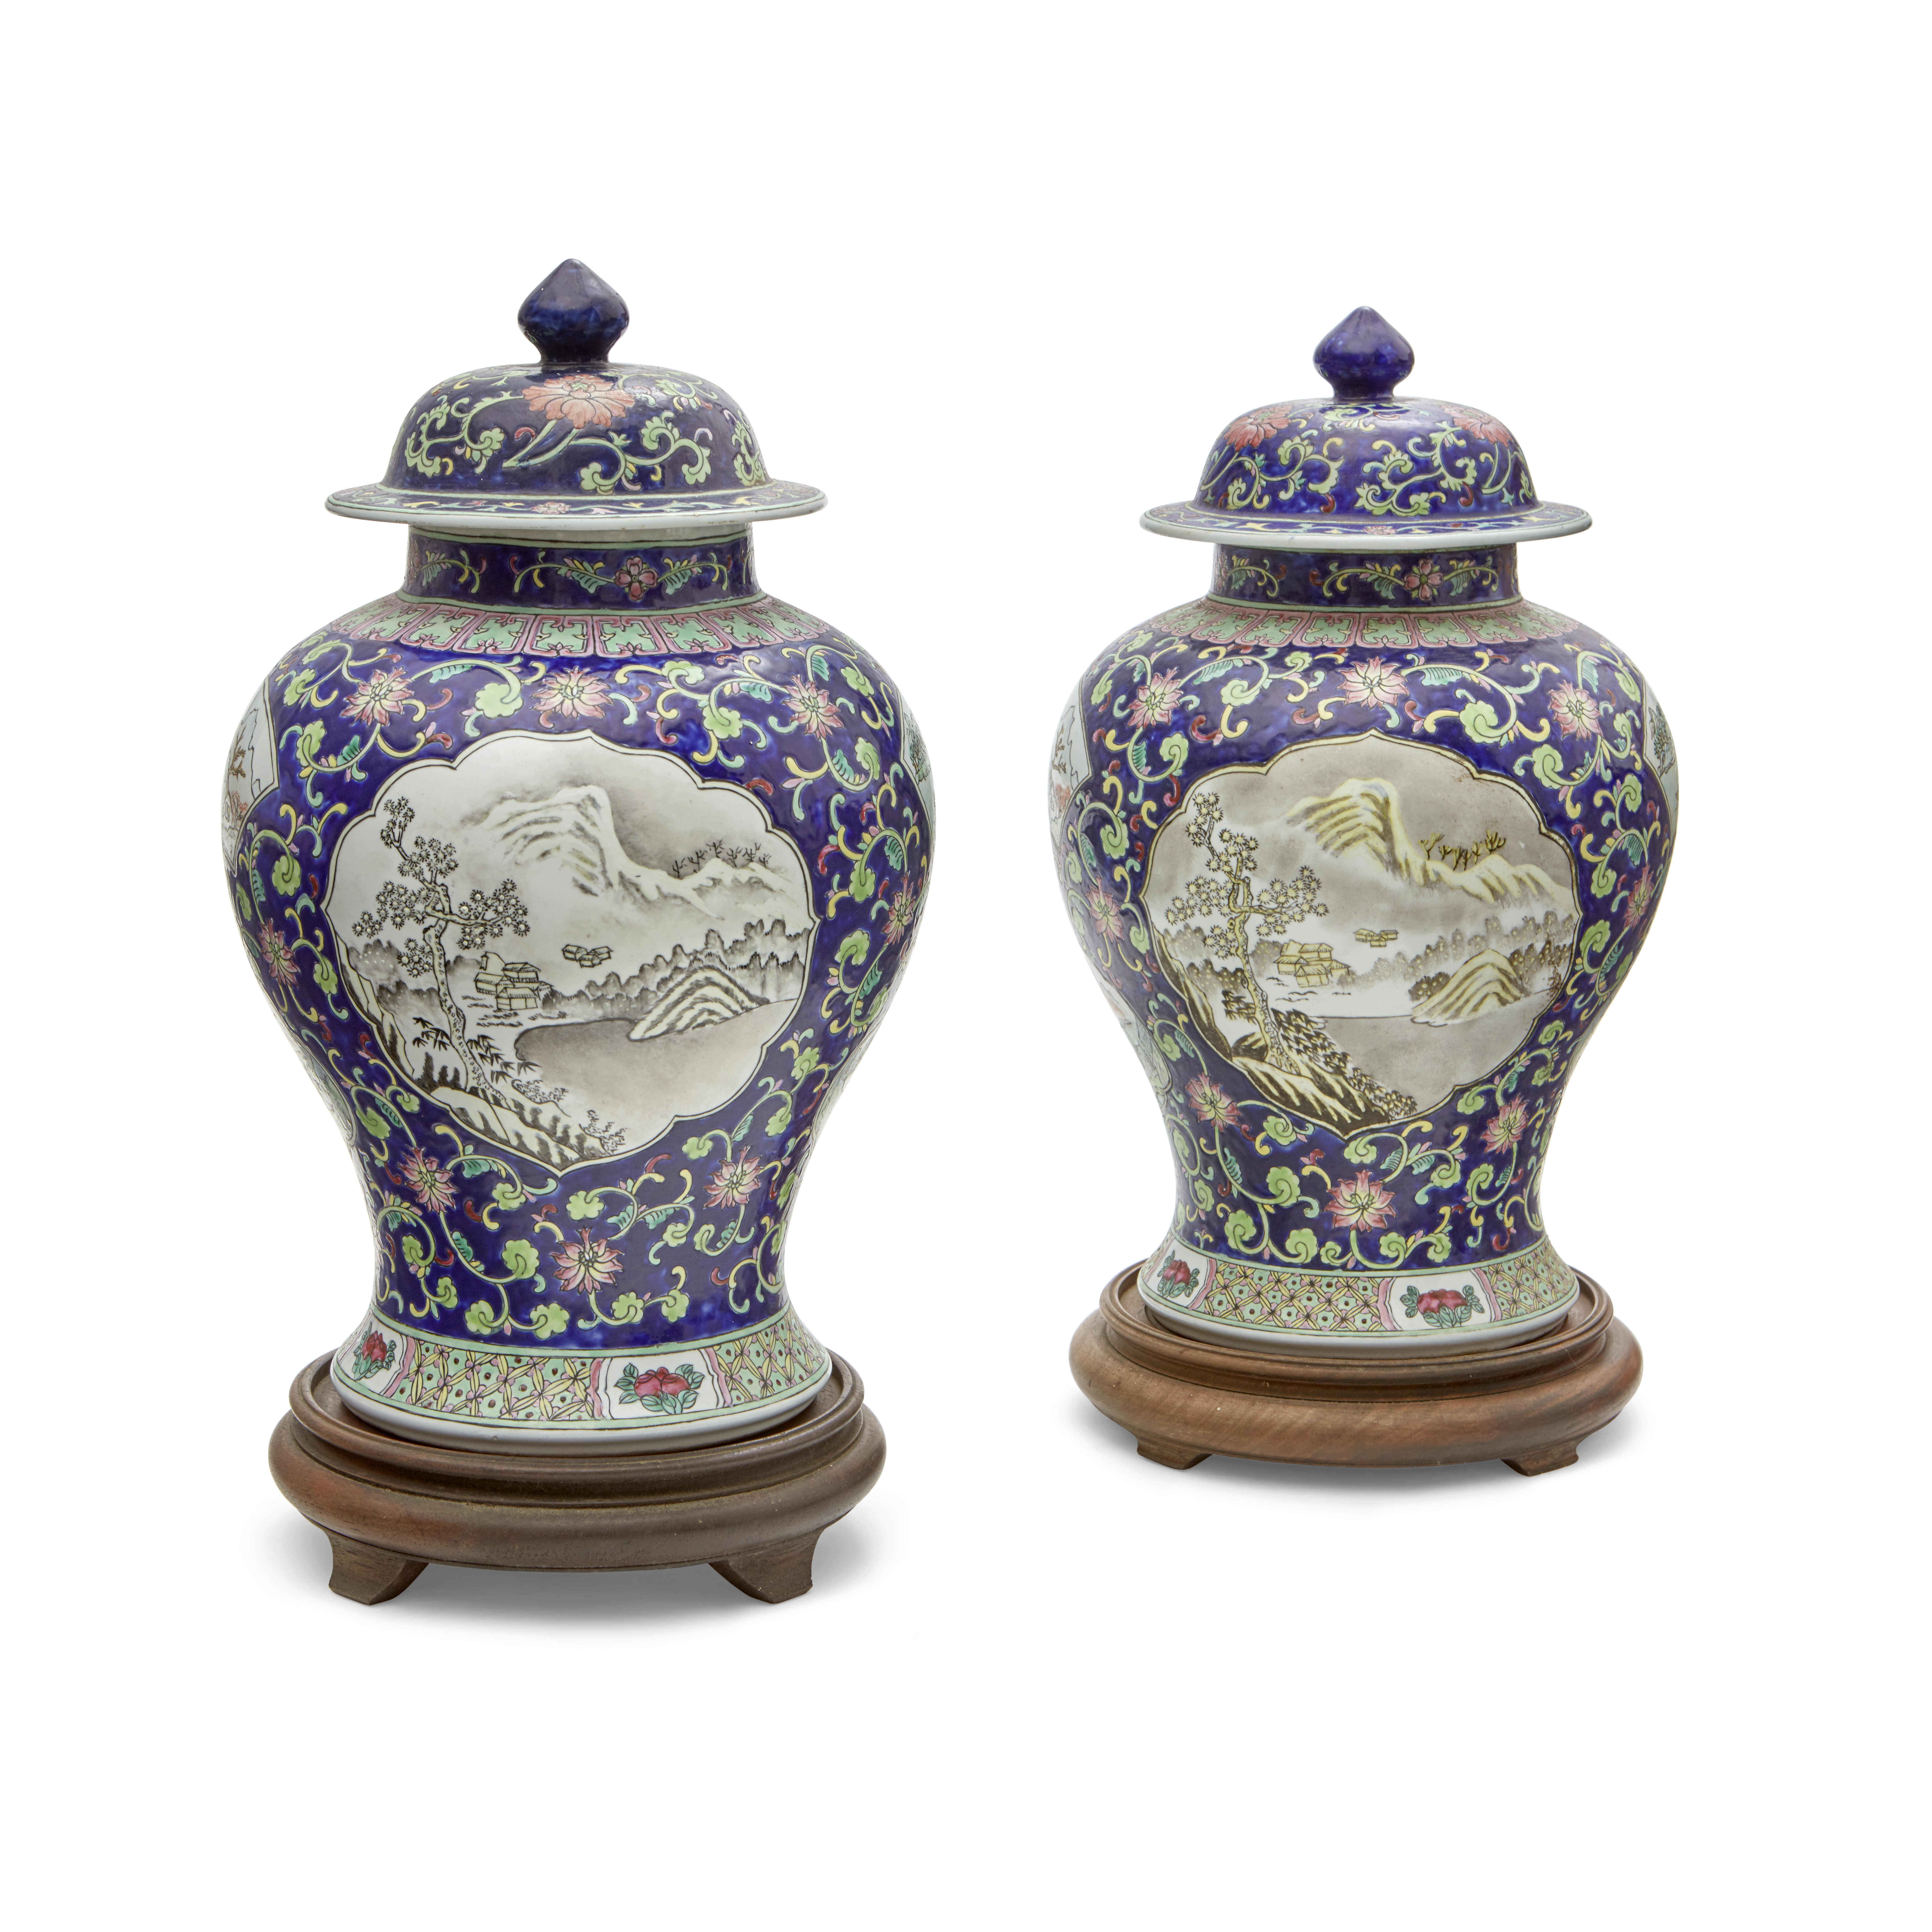 Lot 258 - Pair of Chinese Enameled Porcelain Covered Vases 20th century